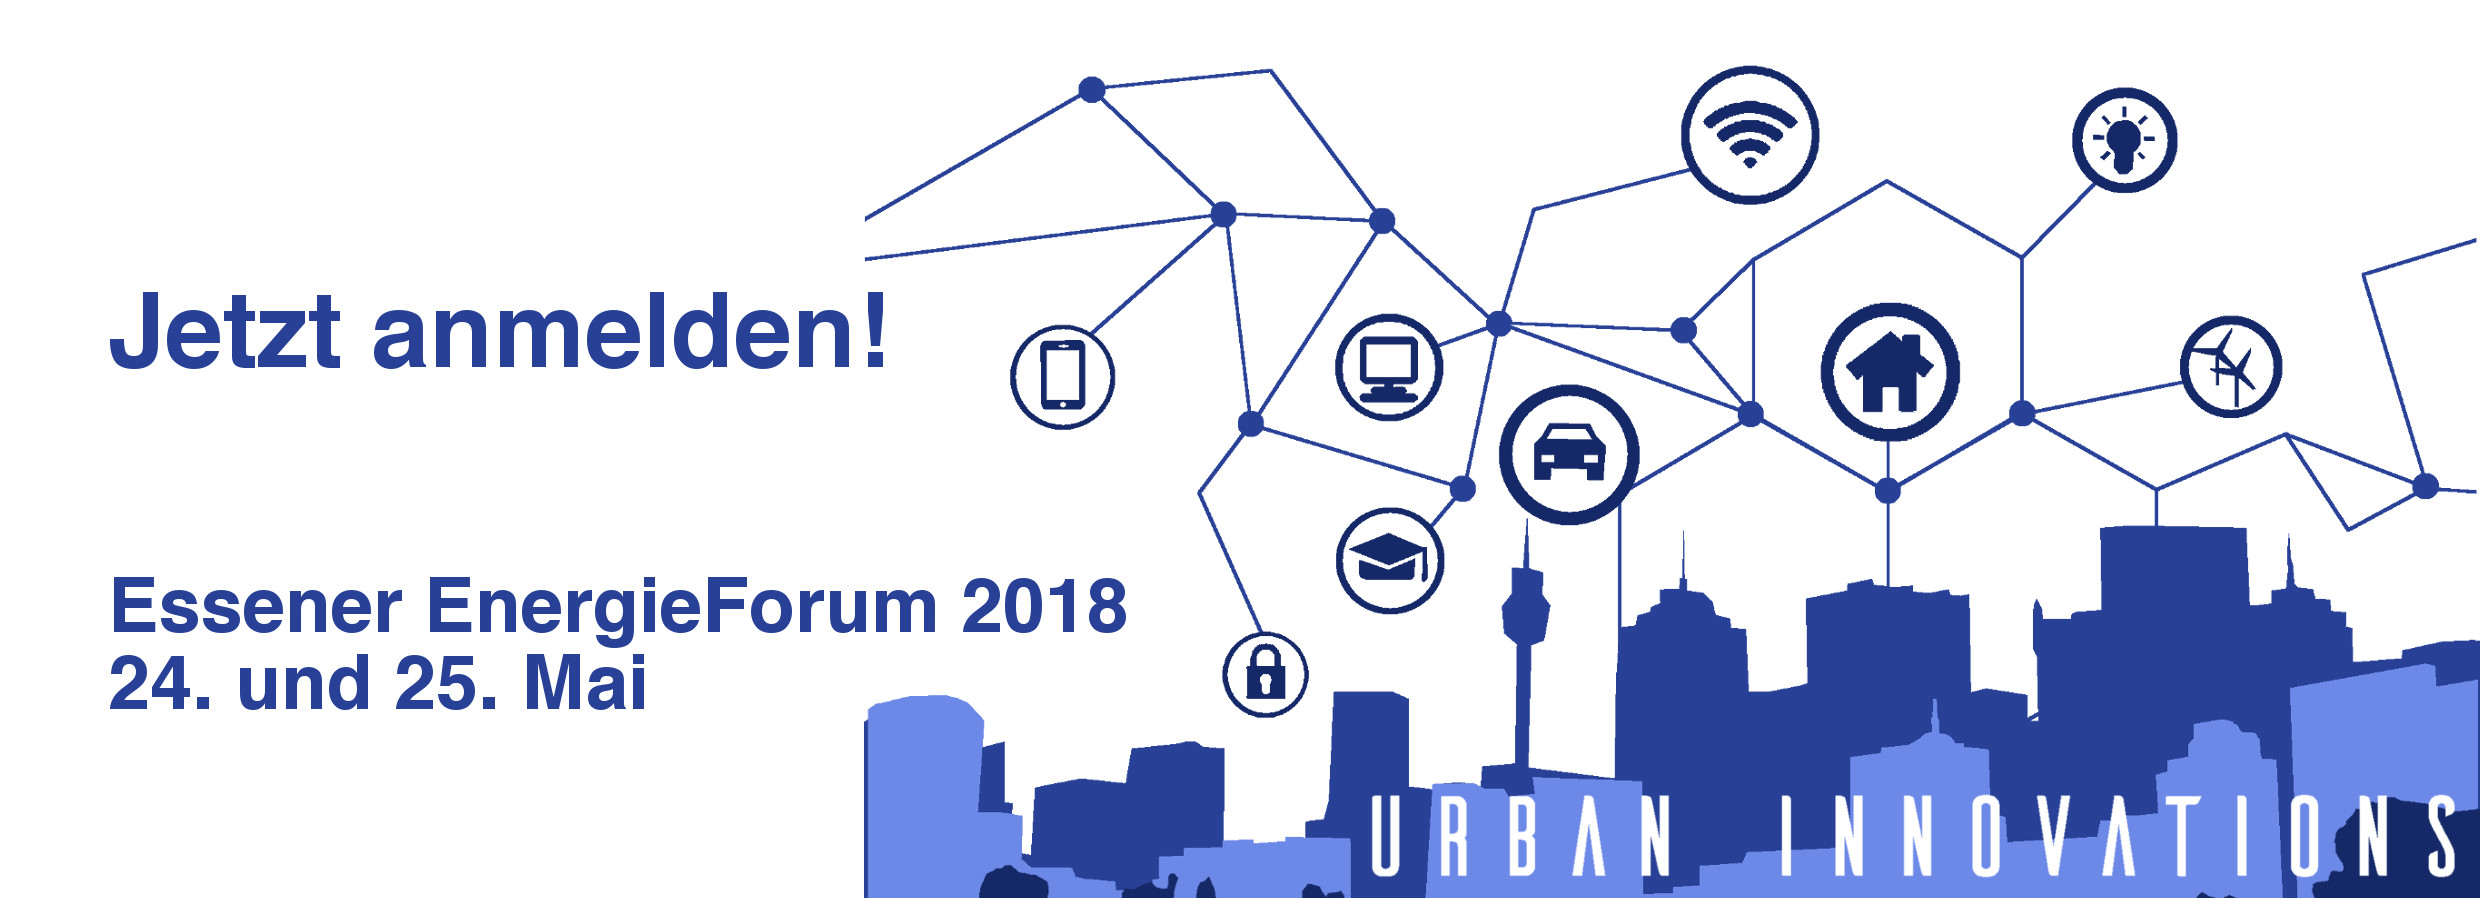 Essener Energieforum 2018 - 24. bis 25. Mai